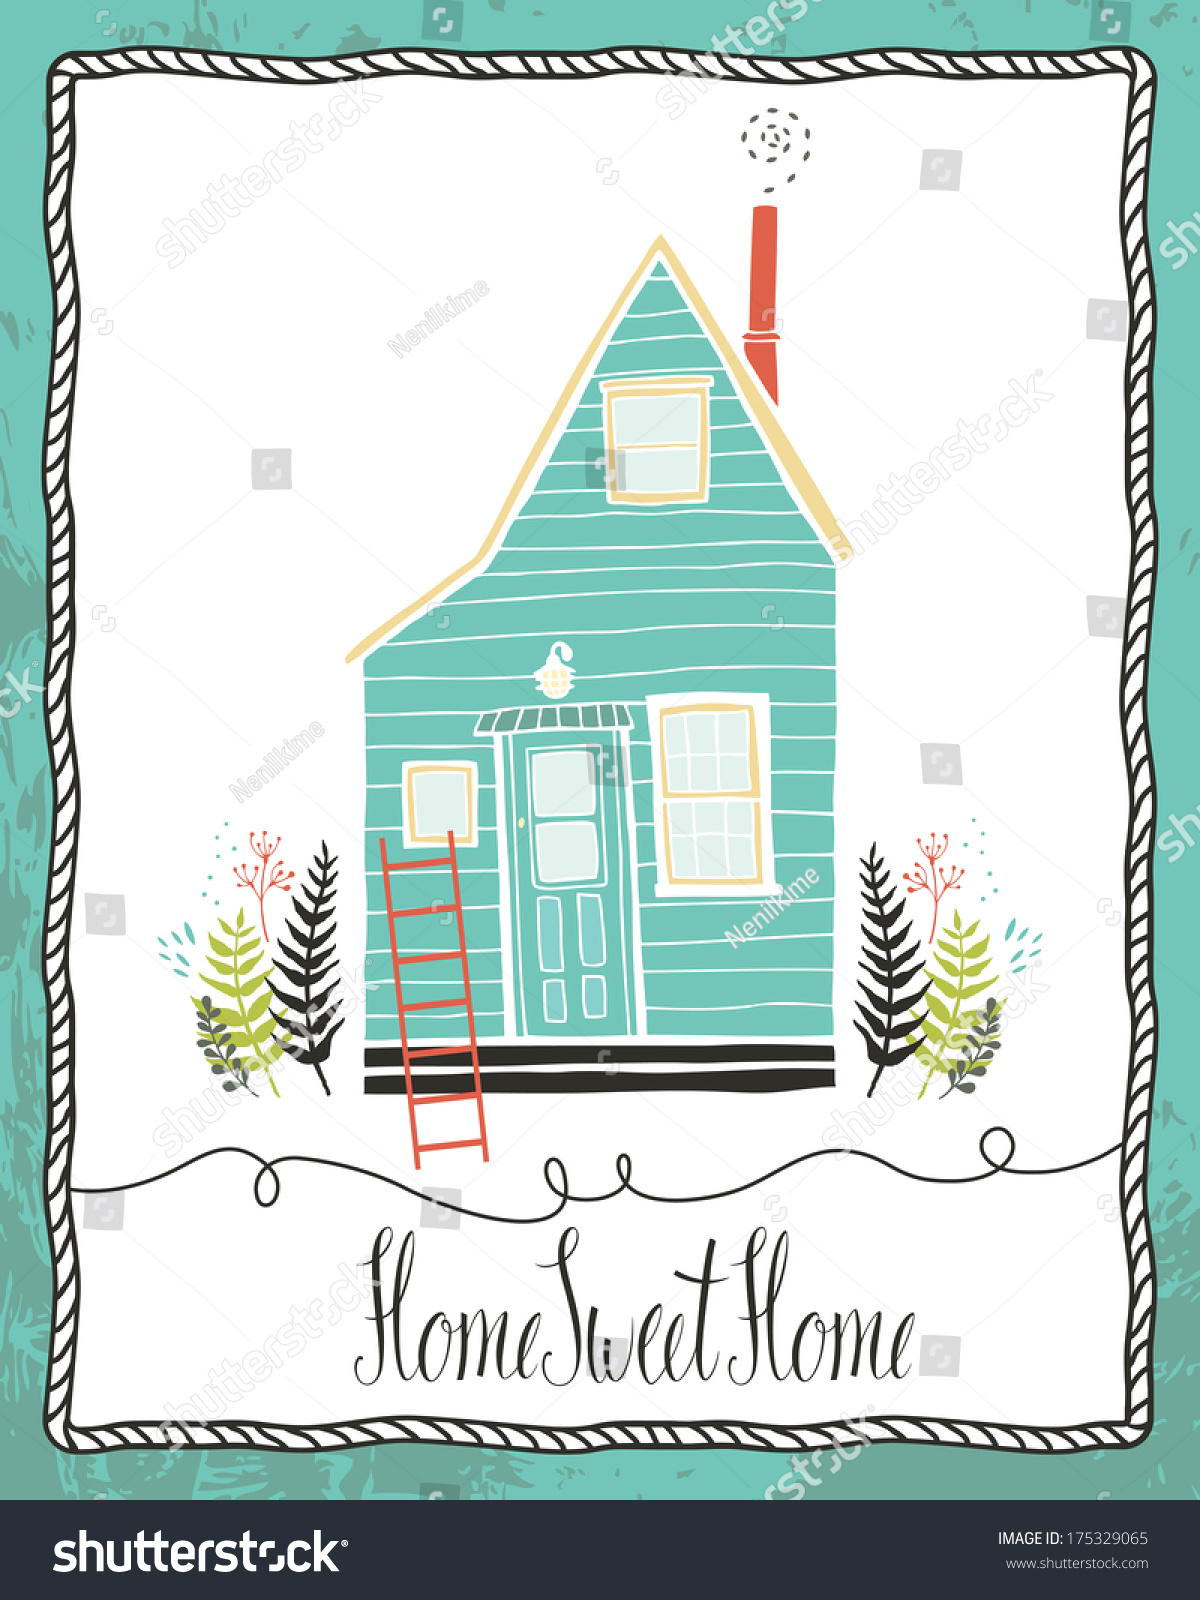 Home Sweet Home Design Card Stock Vector 175329065 - Shutterstock